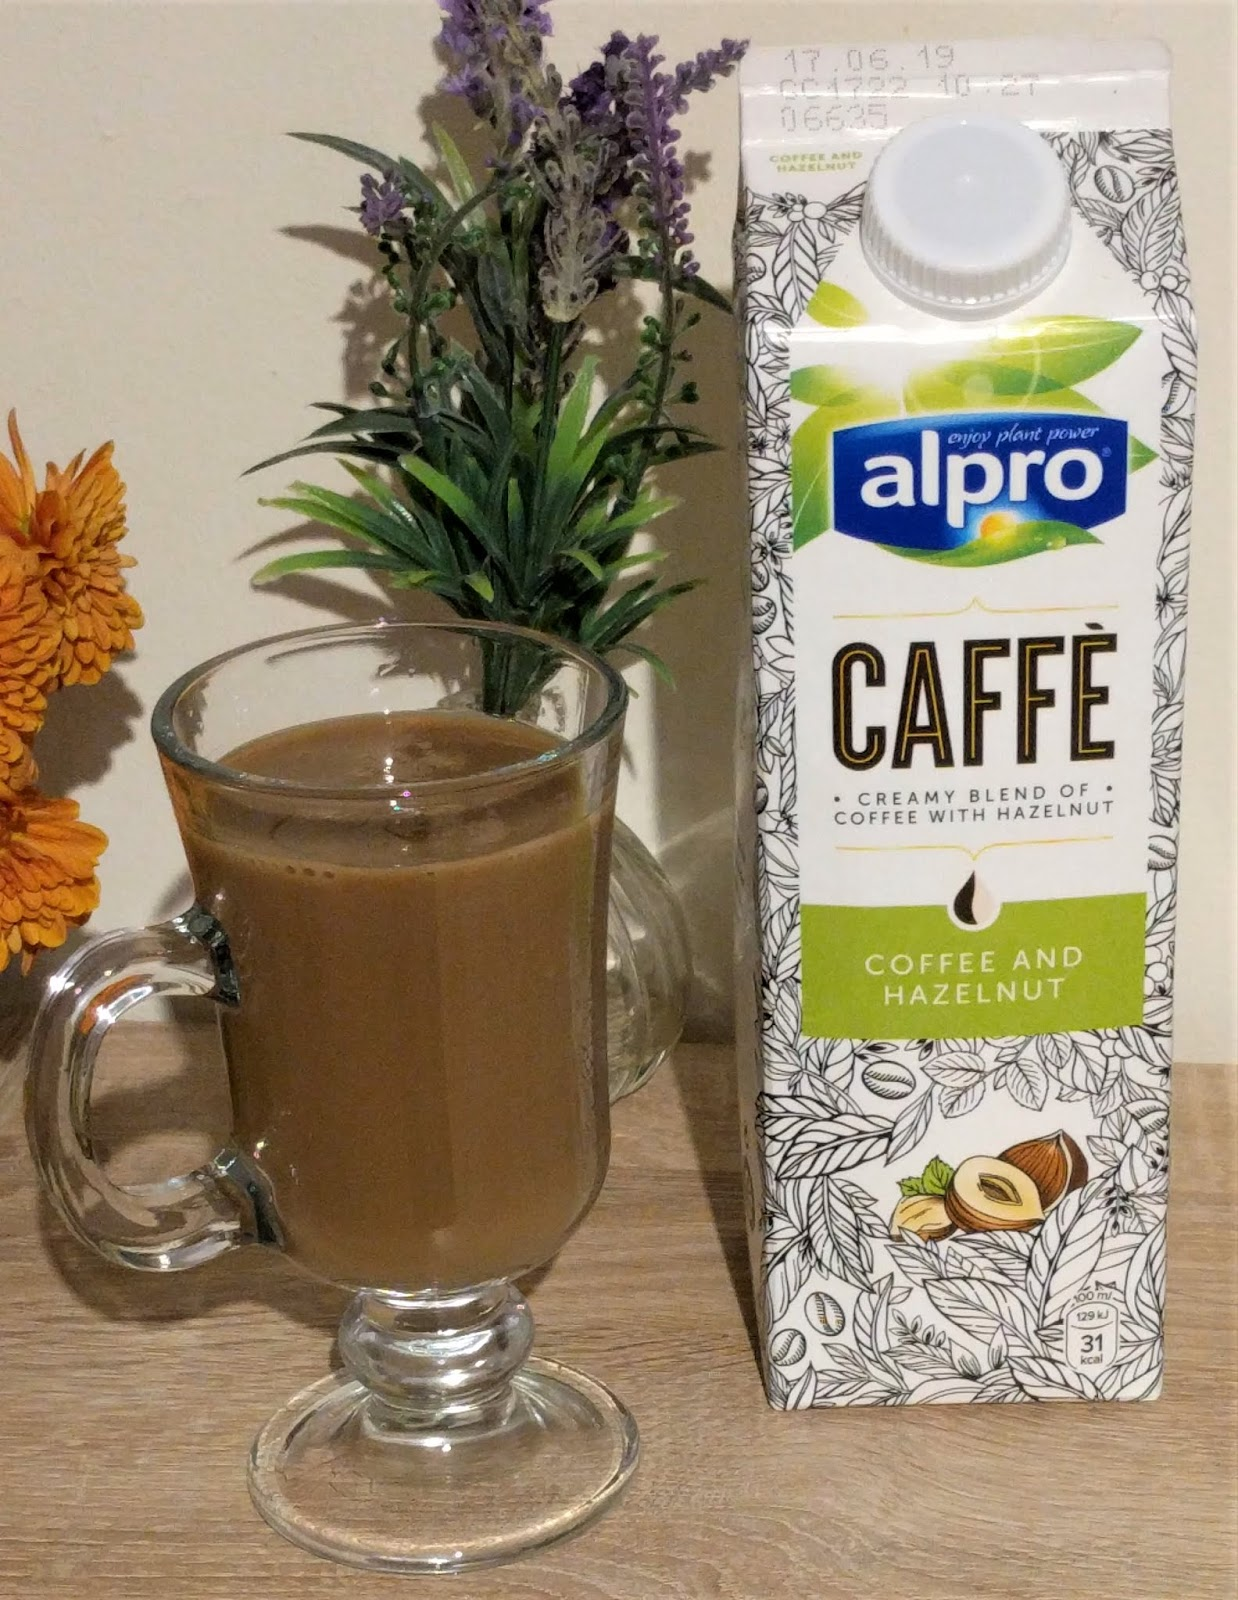 Diets And Calories Alpro Caffe Coffee Hazelnut Drink Review